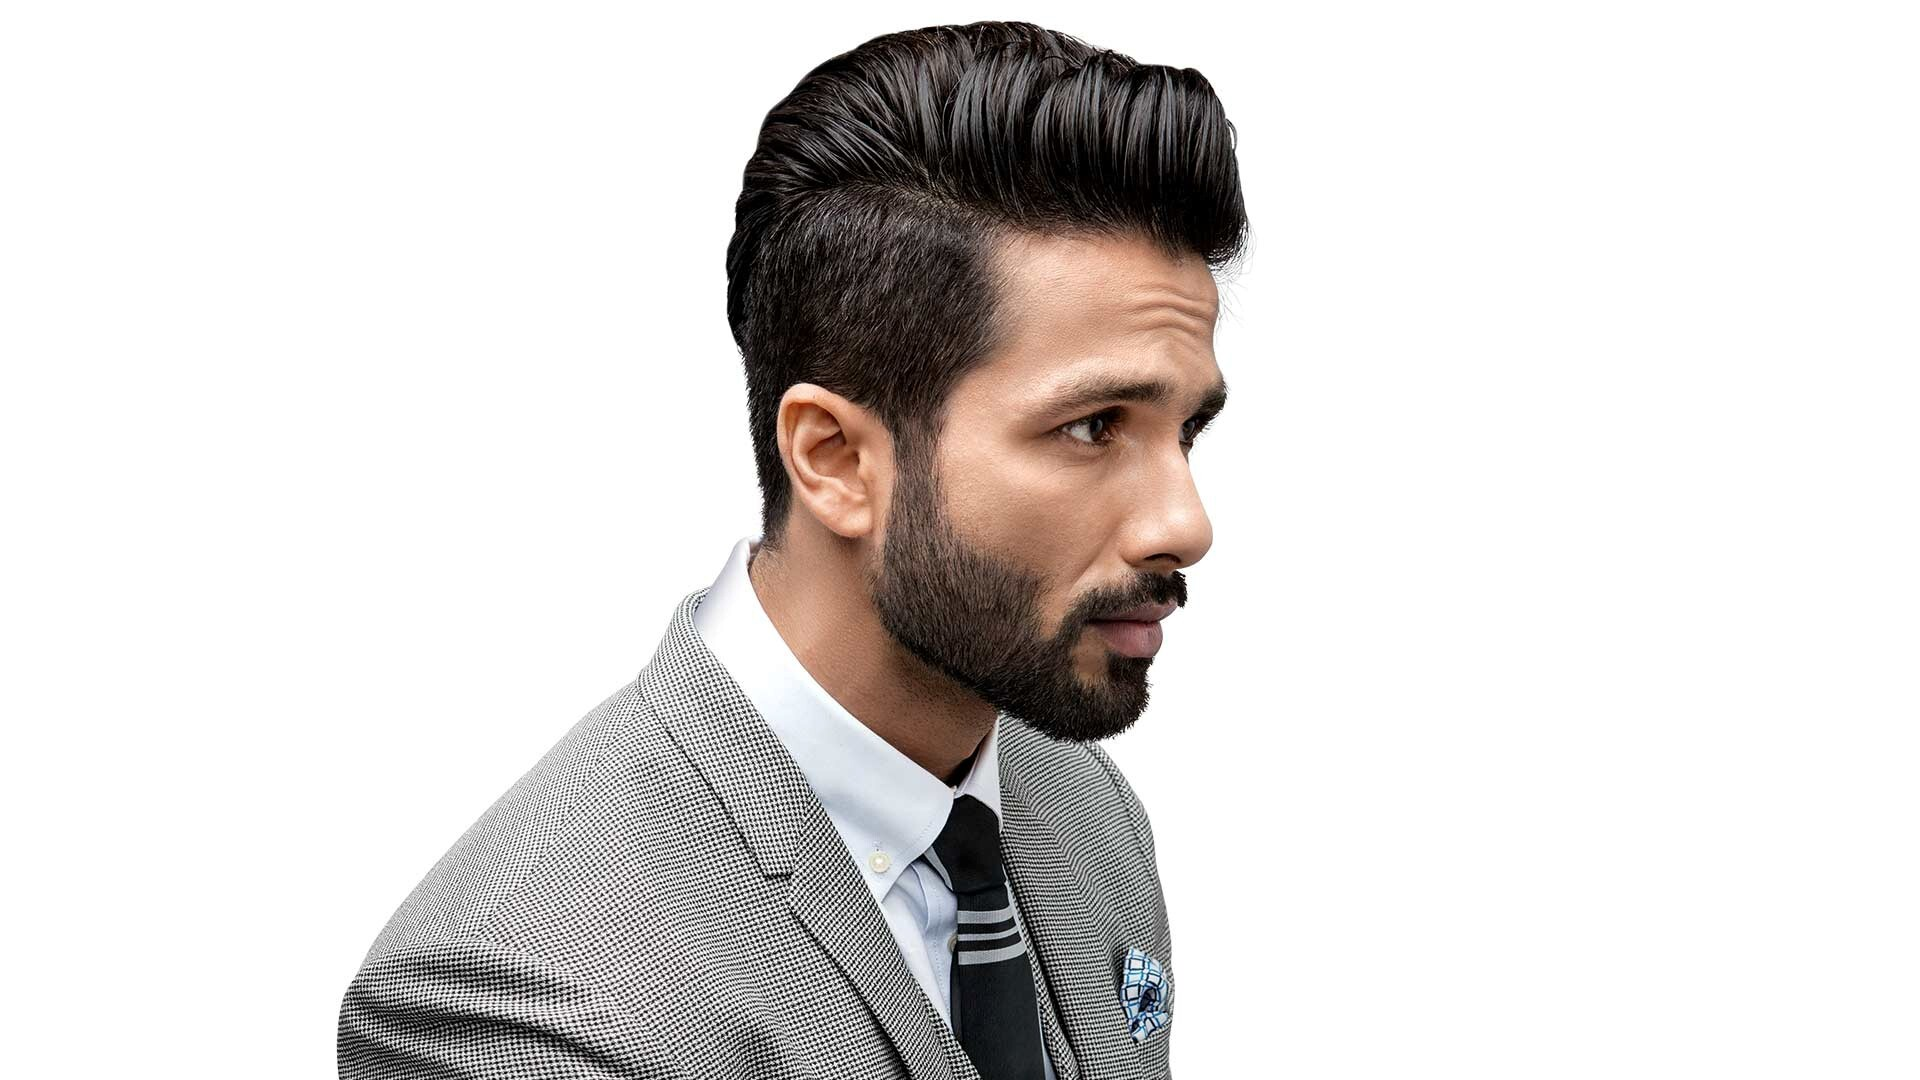 shahid kapoor wallpapers | free download hd bollywood actors images